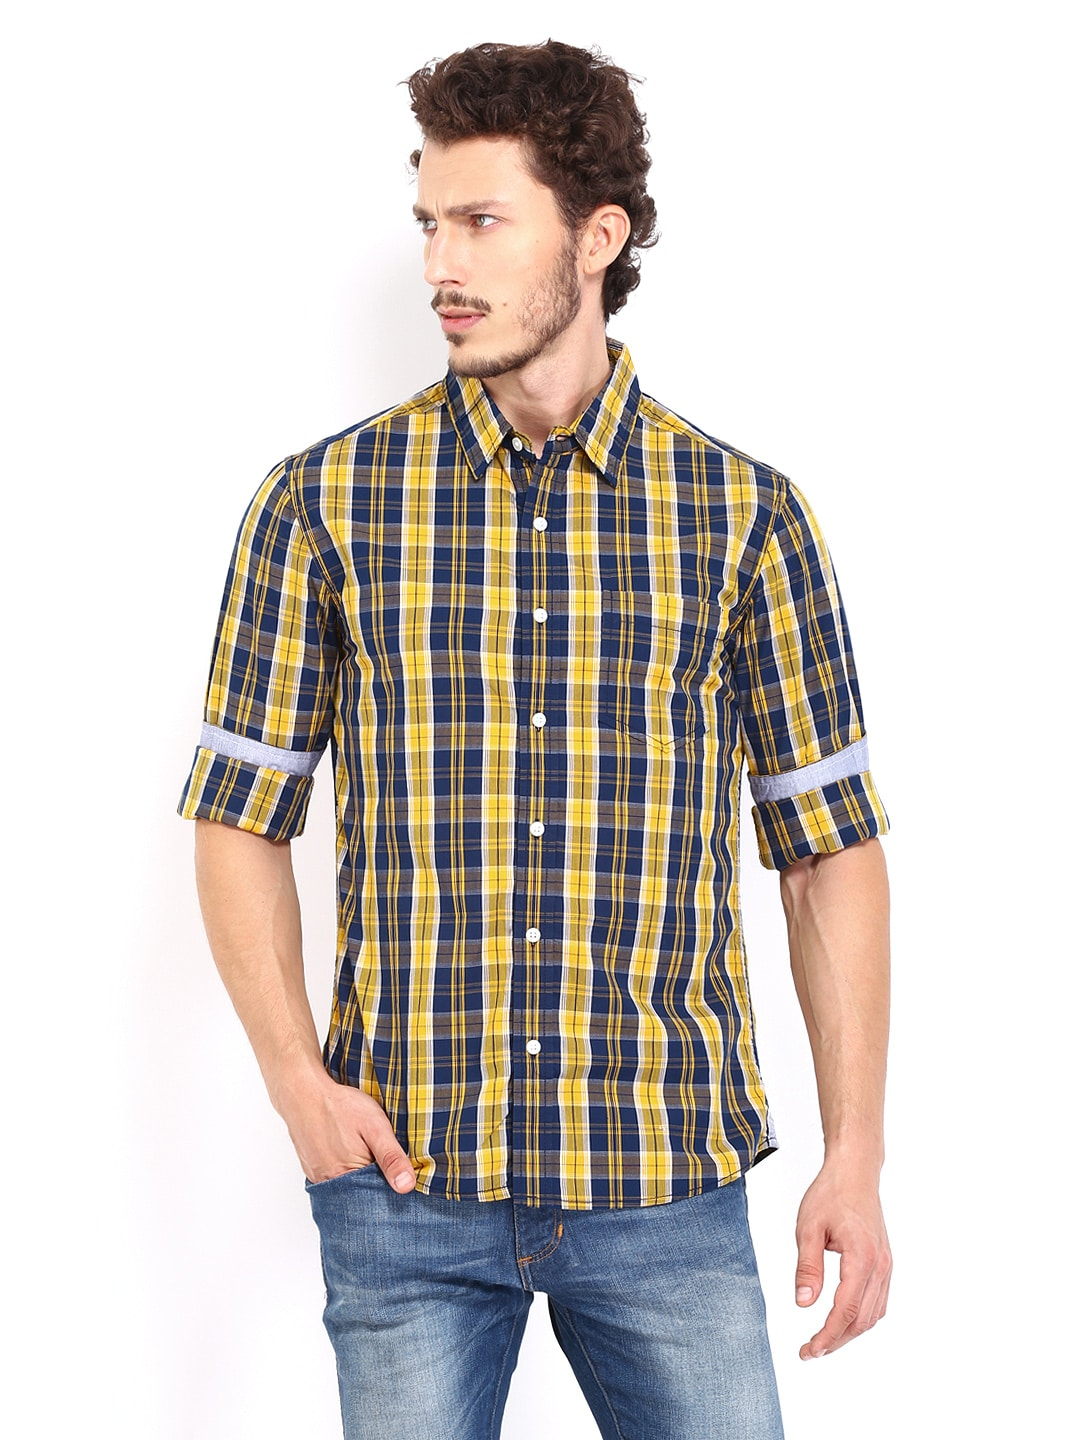 Mustard People Men Mustard Yellow & Navy Checked Slim Fit Casual Shirt (Multicolor)